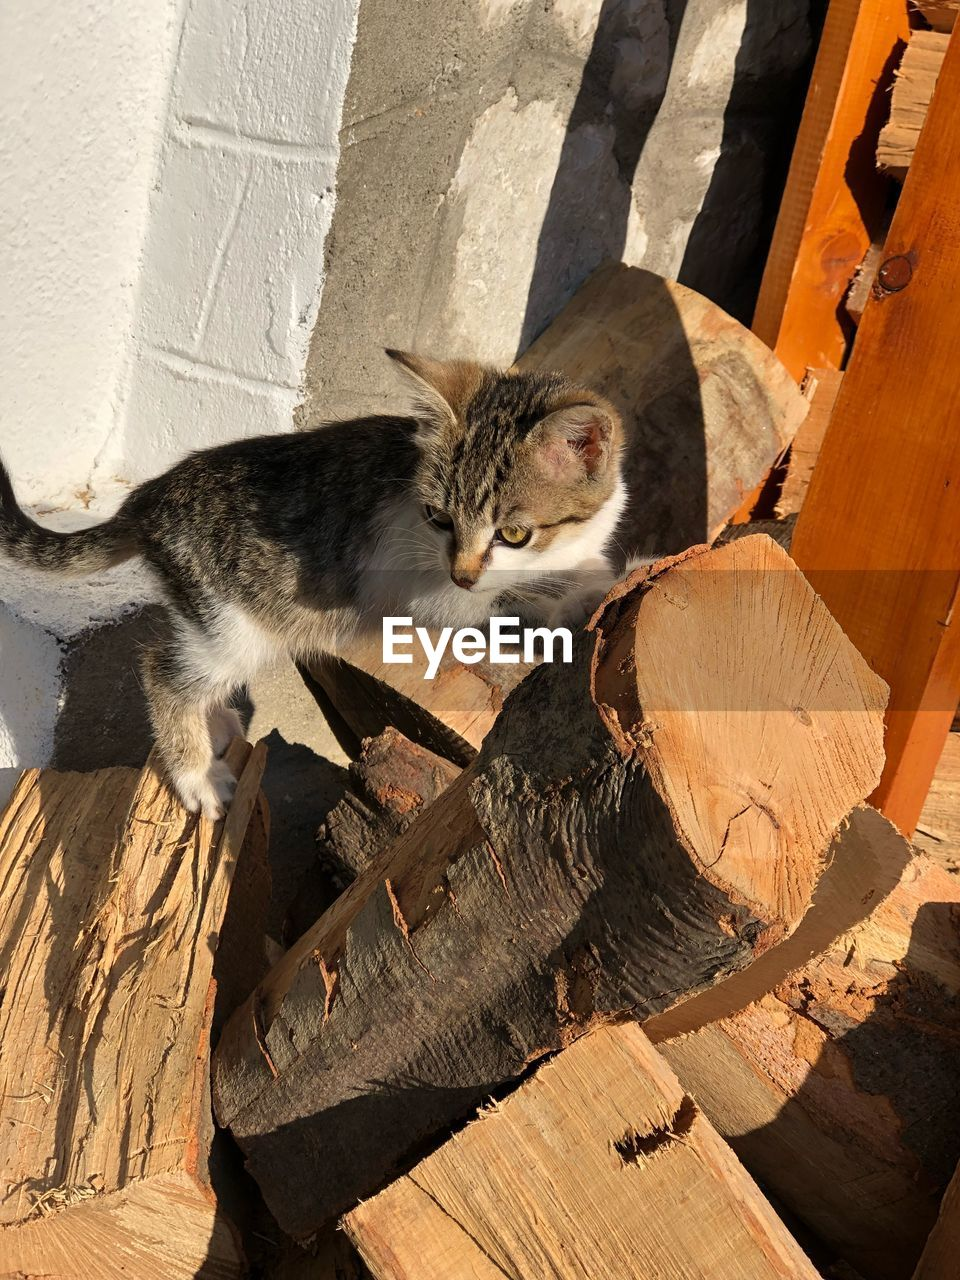 cat, domestic cat, feline, domestic, pets, mammal, animal themes, domestic animals, animal, vertebrate, one animal, no people, high angle view, relaxation, wood - material, day, sunlight, nature, looking at camera, whisker